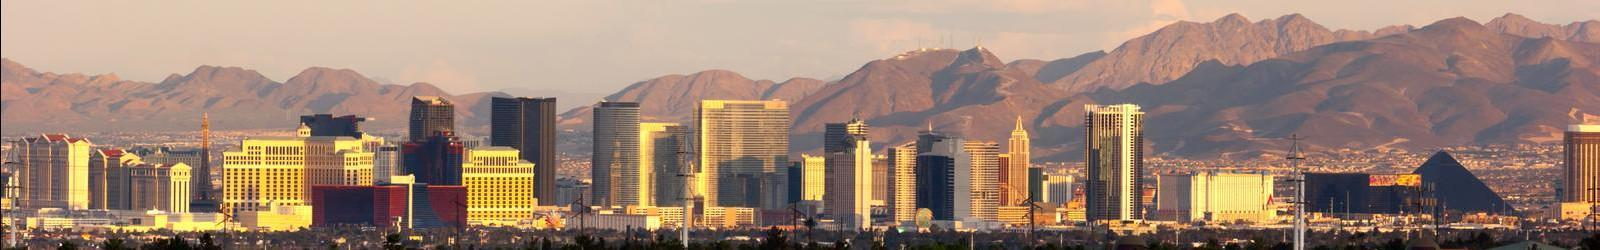 Therapists in Las Vegas, Nevada: psychologists, counselors, and mental health specialists